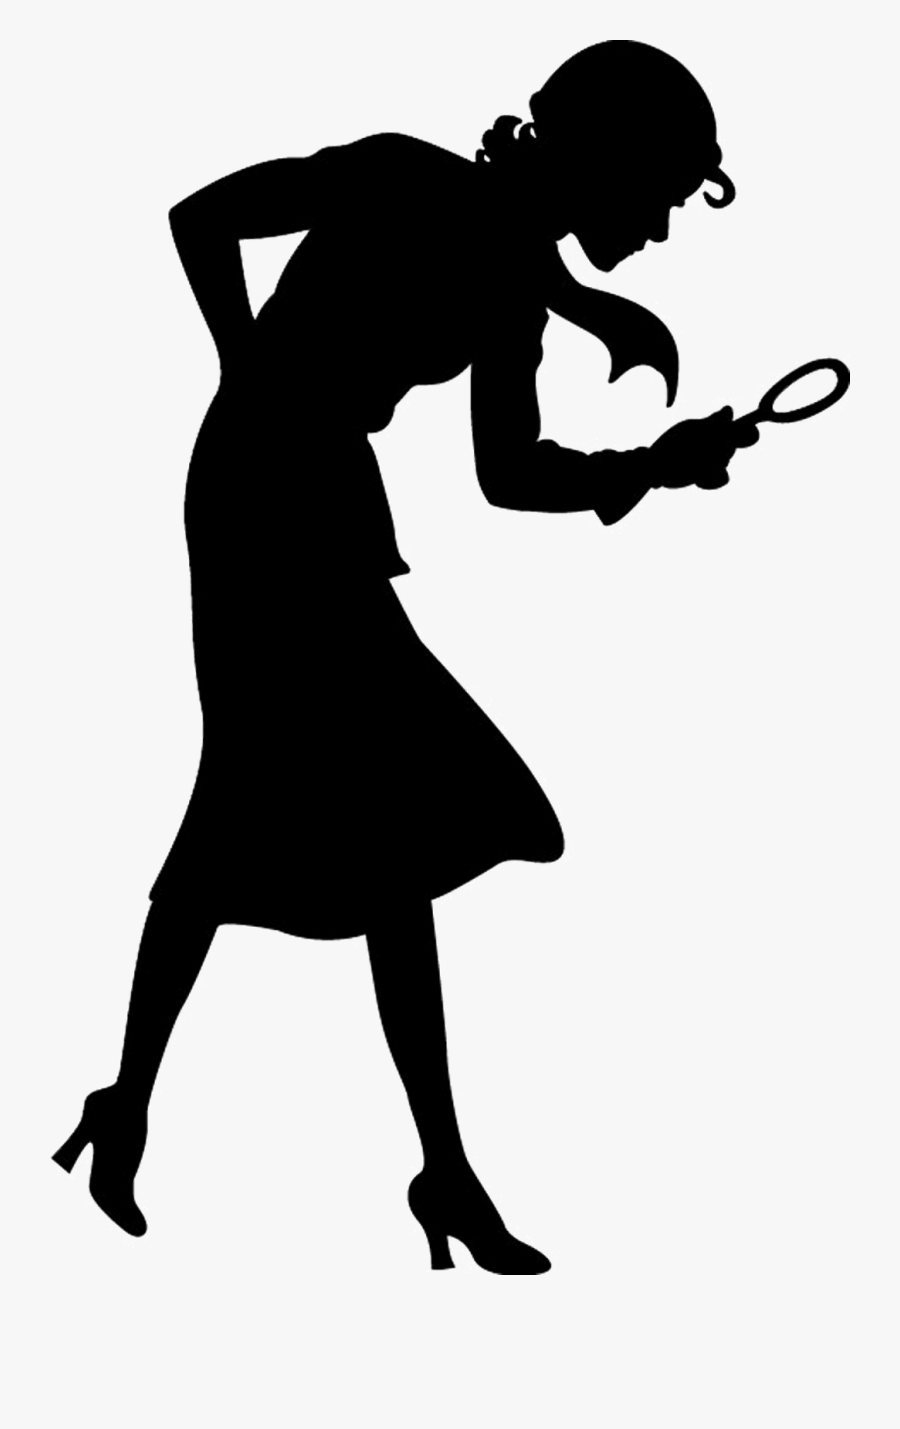 Nancy Drew Silhouette Transparent, Transparent Clipart